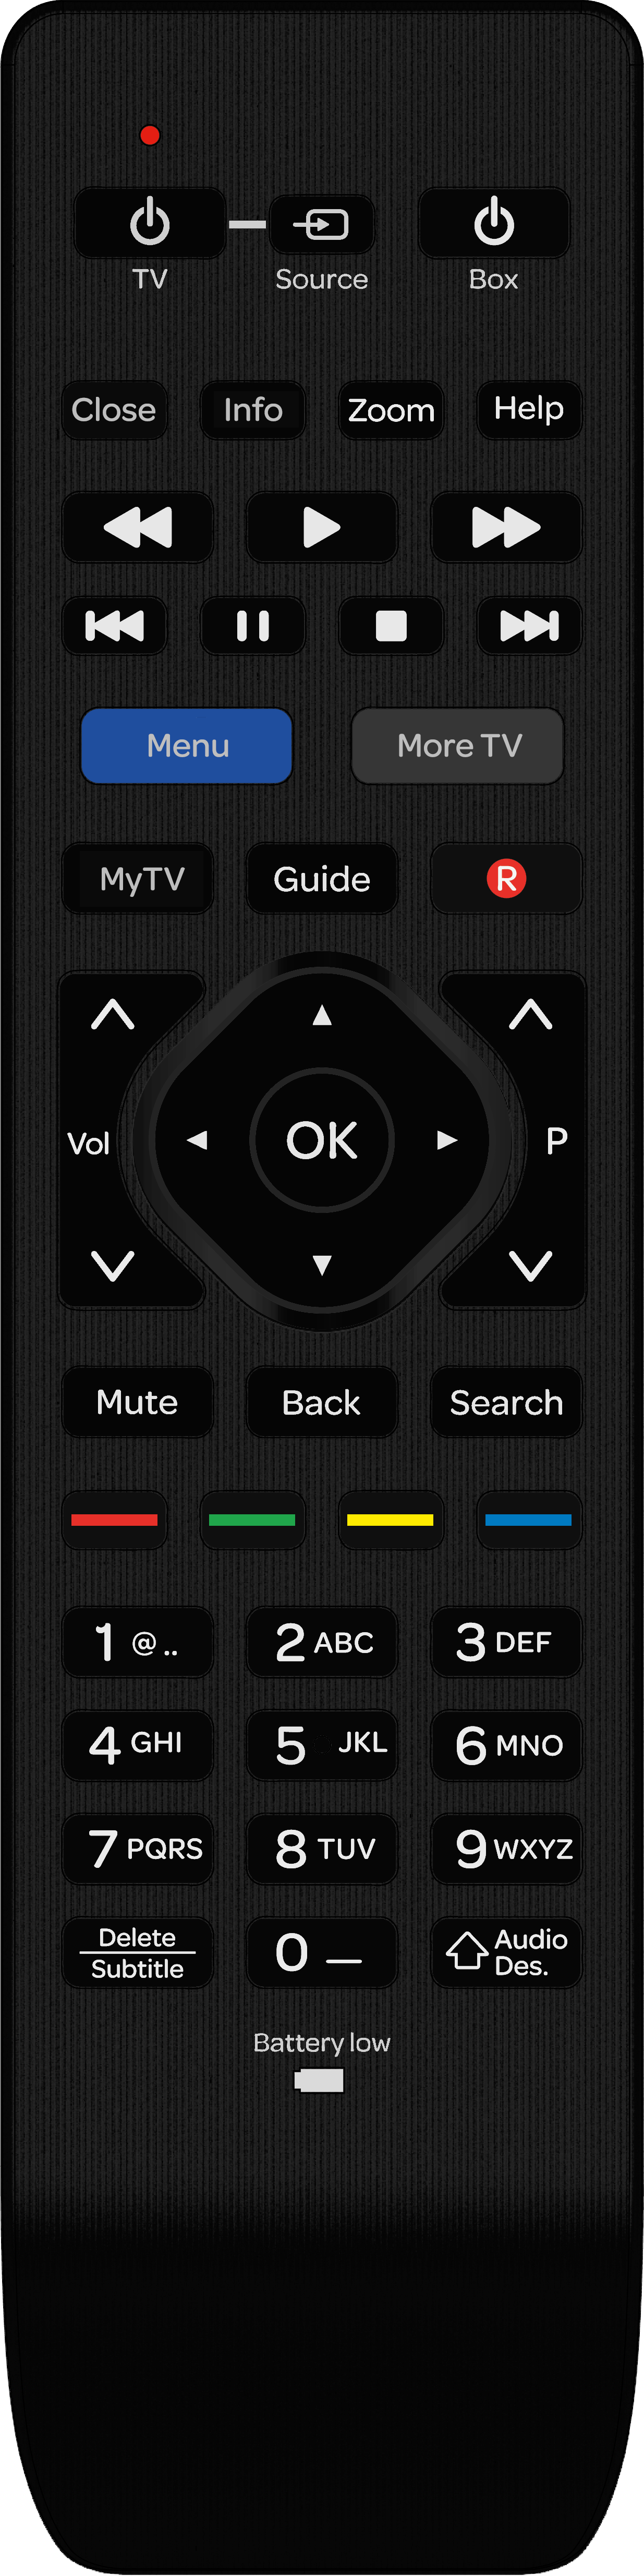 Revised-Remote-reLaunchv3-